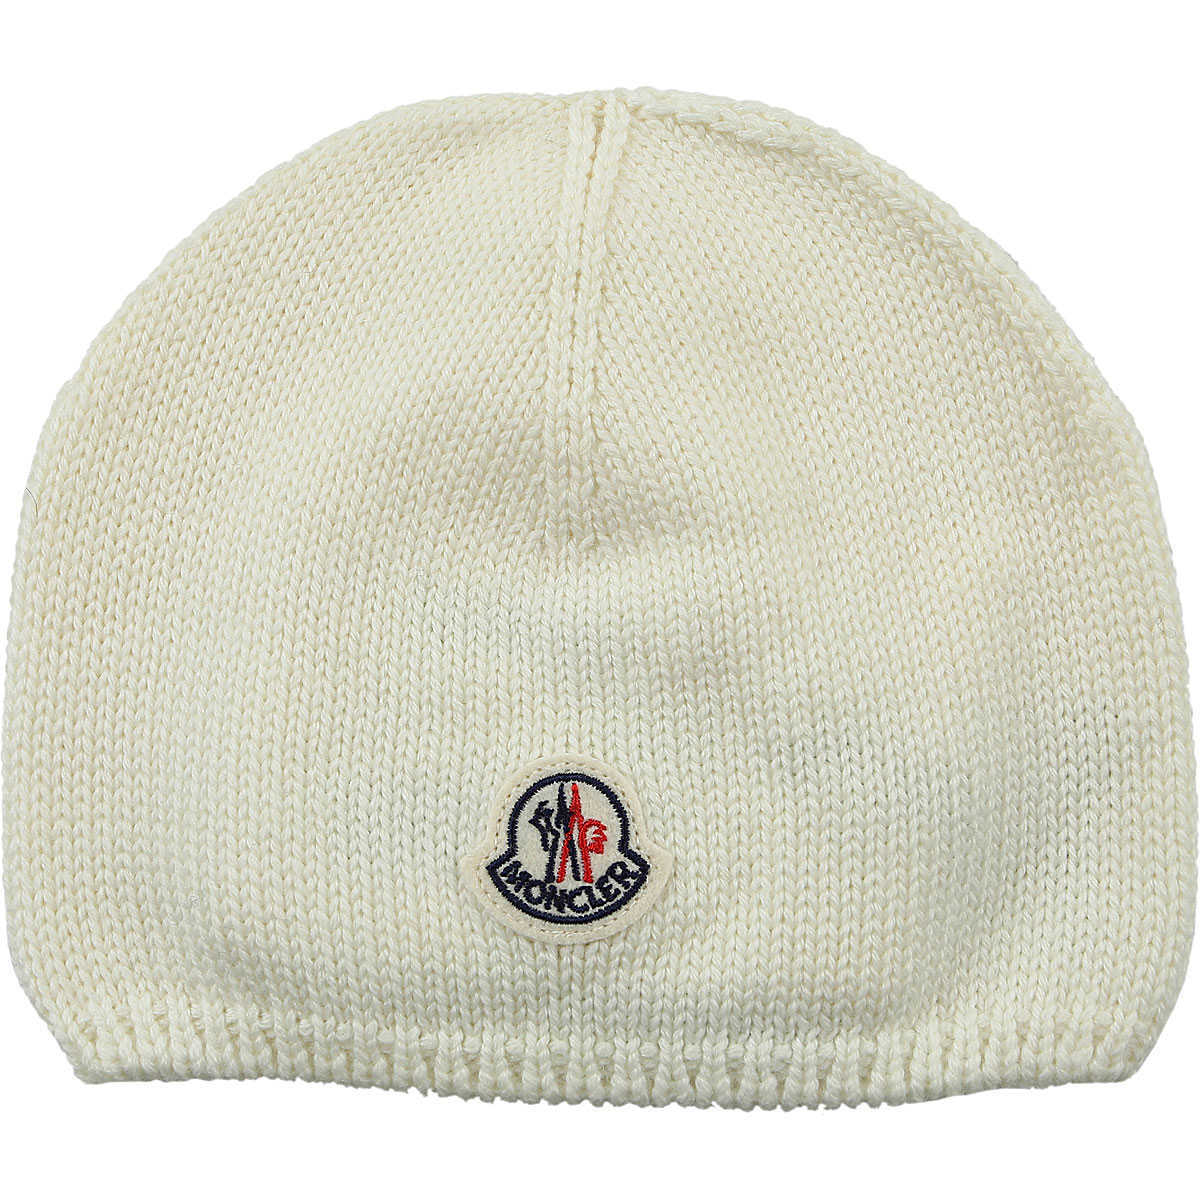 Moncler Kids Hats for Girls in Outlet Cream Canada - GOOFASH - Womens HATS